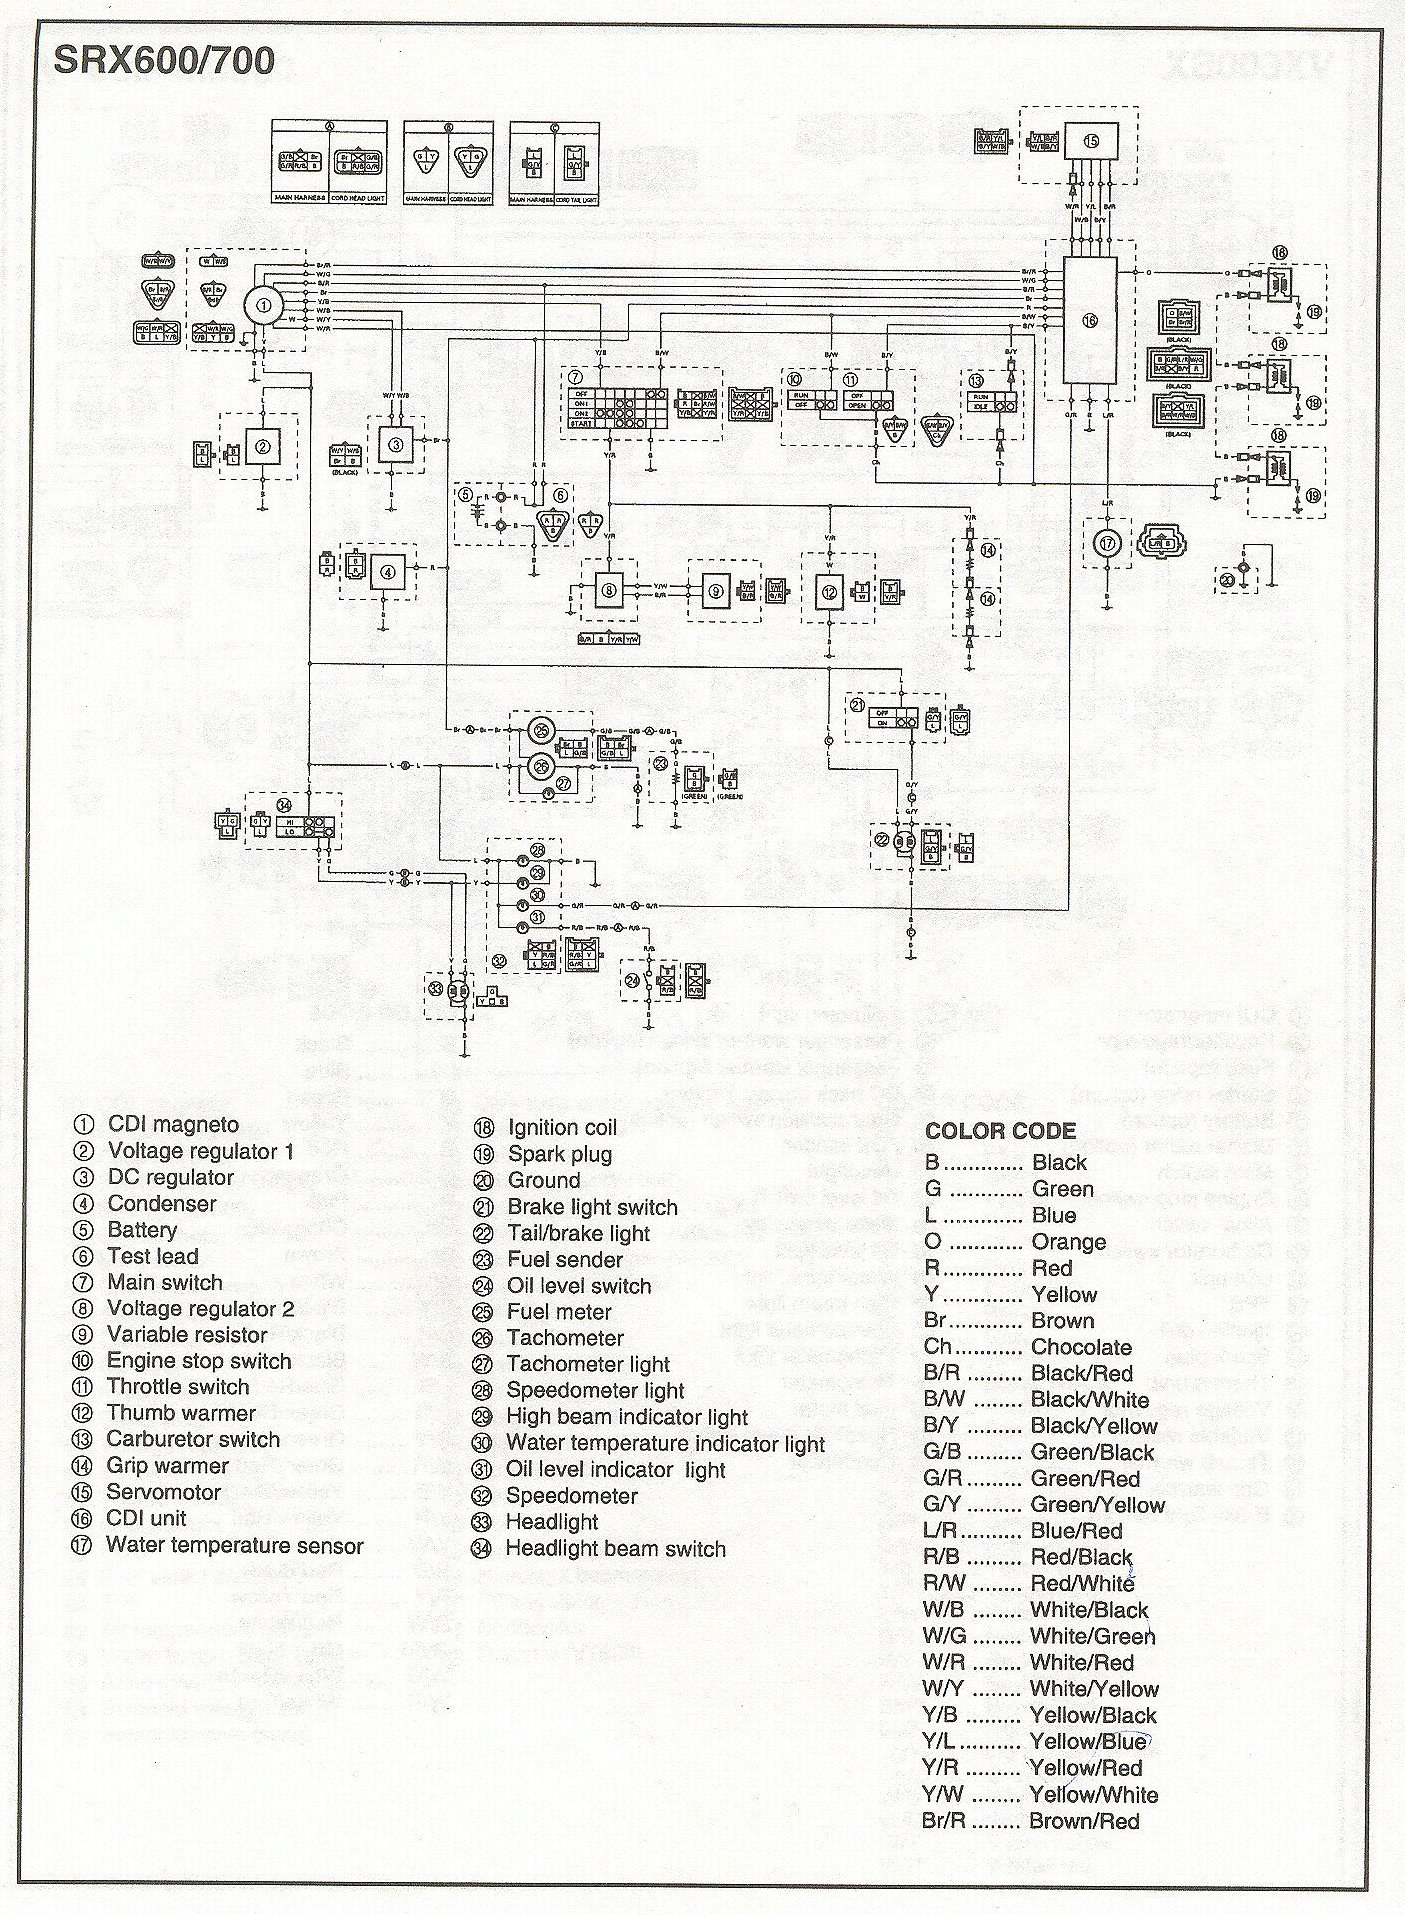 polaris 120 snowmobile wiring diagram: amazing polaris 120 wiring diagram  photos - best image wire